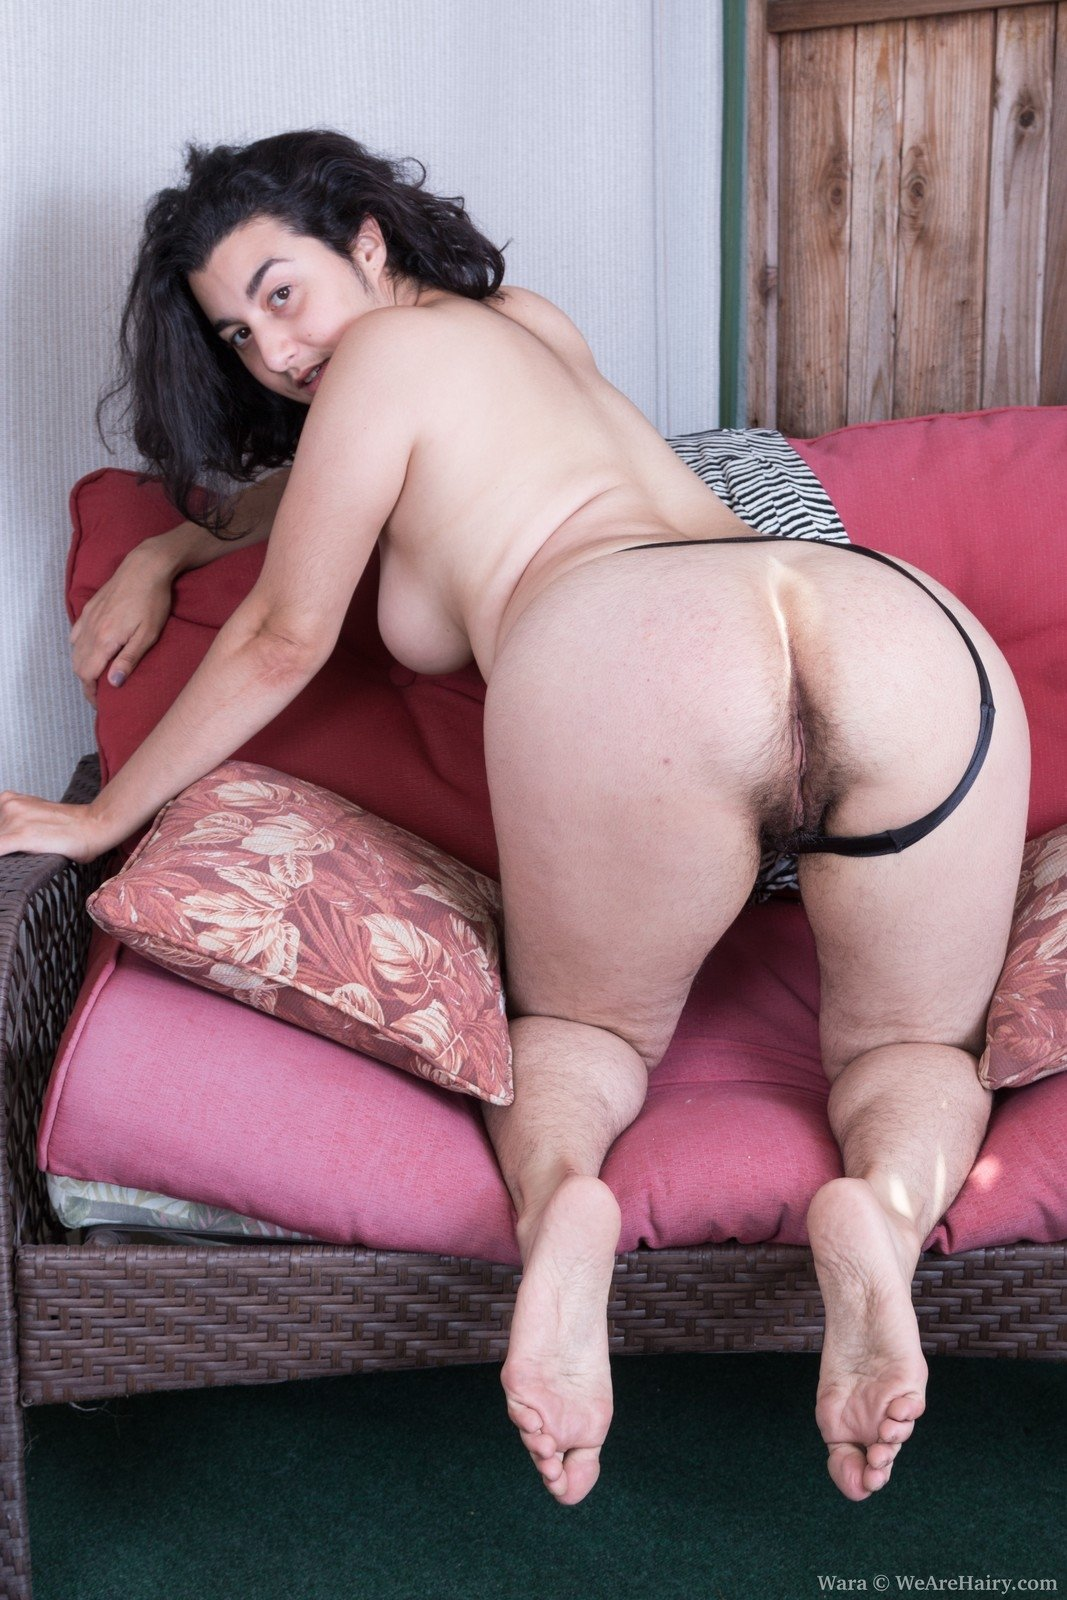 Tube trans amateur online sex video chat with strangers